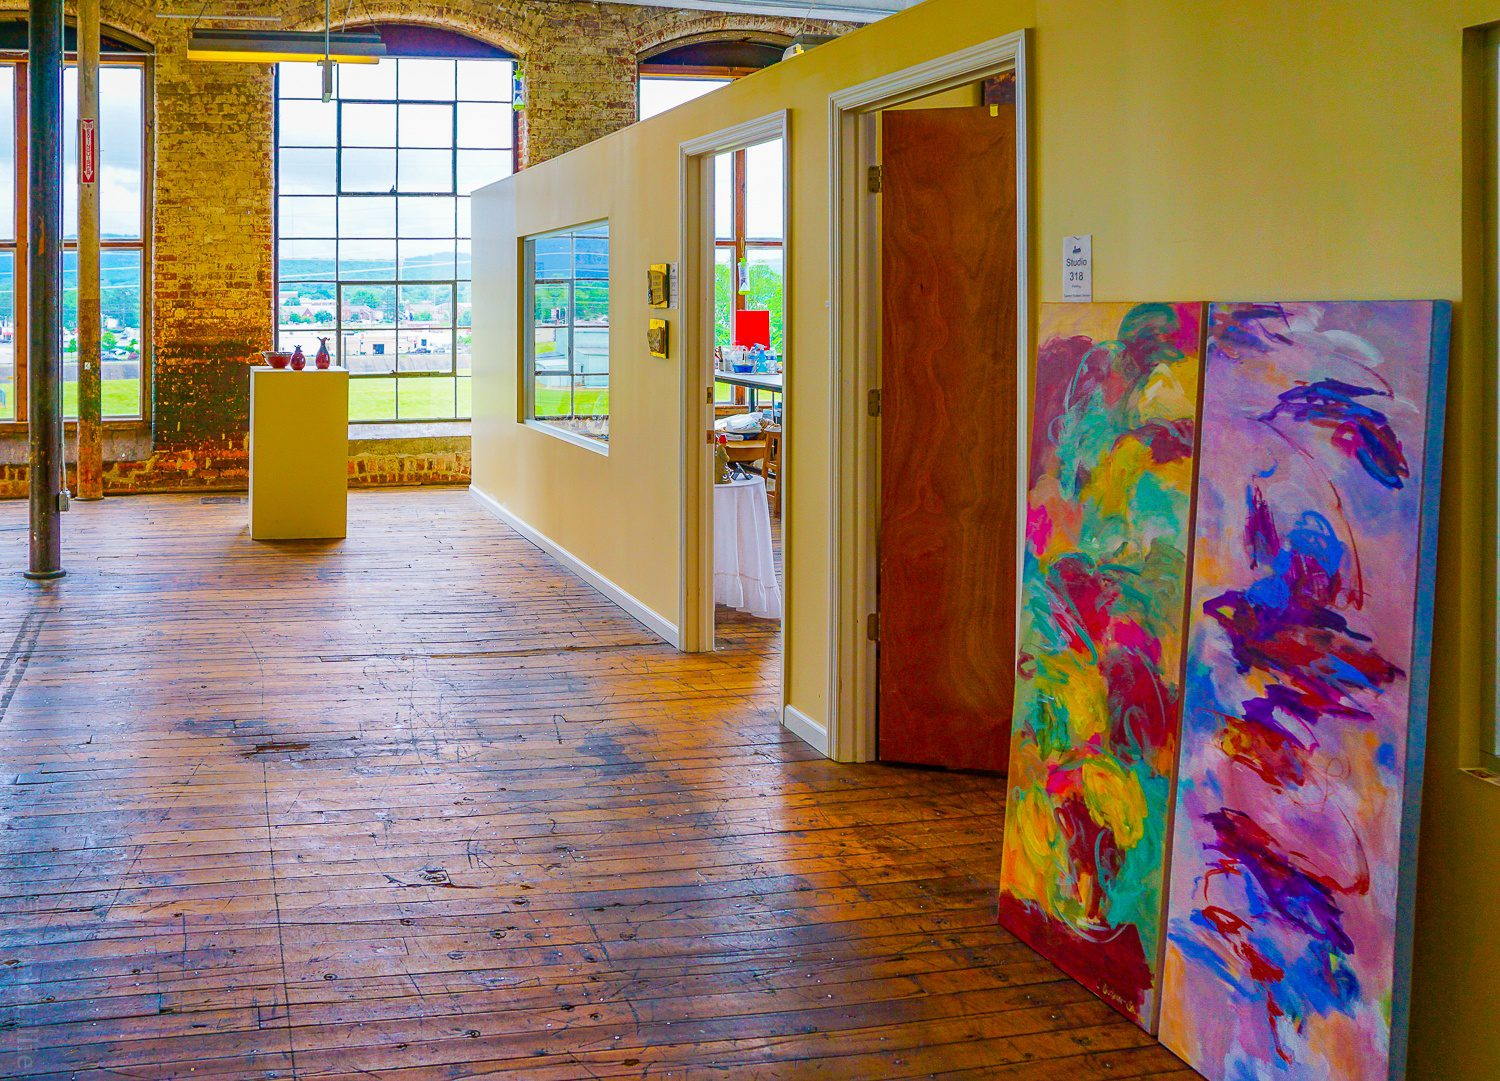 Giant windows line the long halls of the mill: Perfect for art creation.